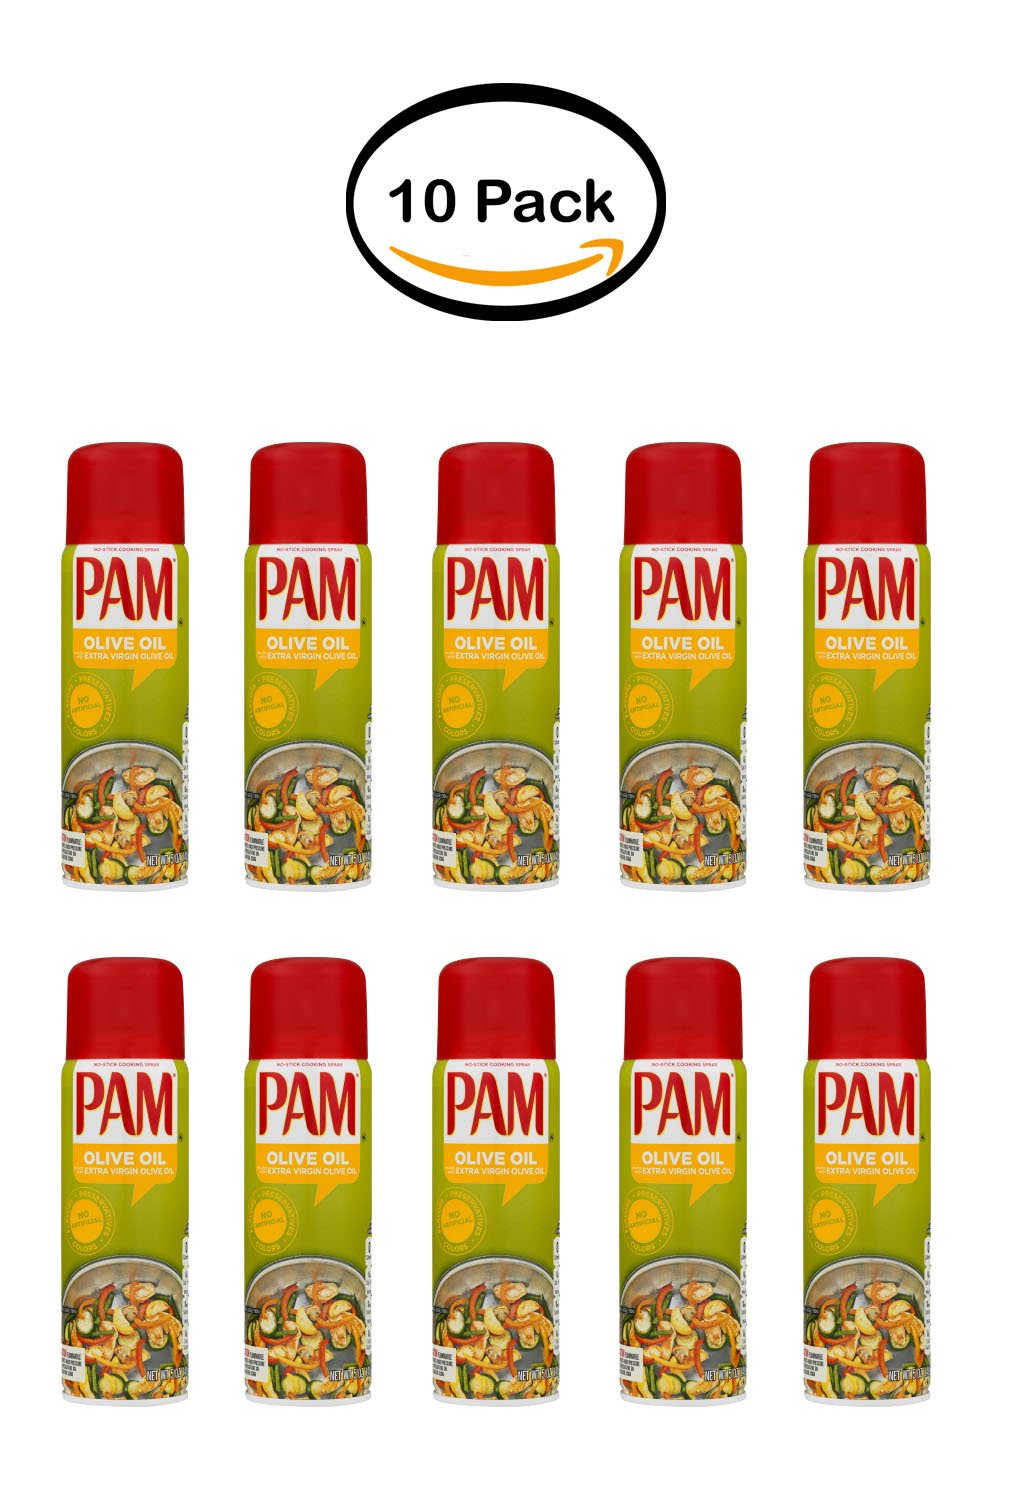 PACK OF 10 - PAM Olive Oil Cooking Spray, 5 Ounce